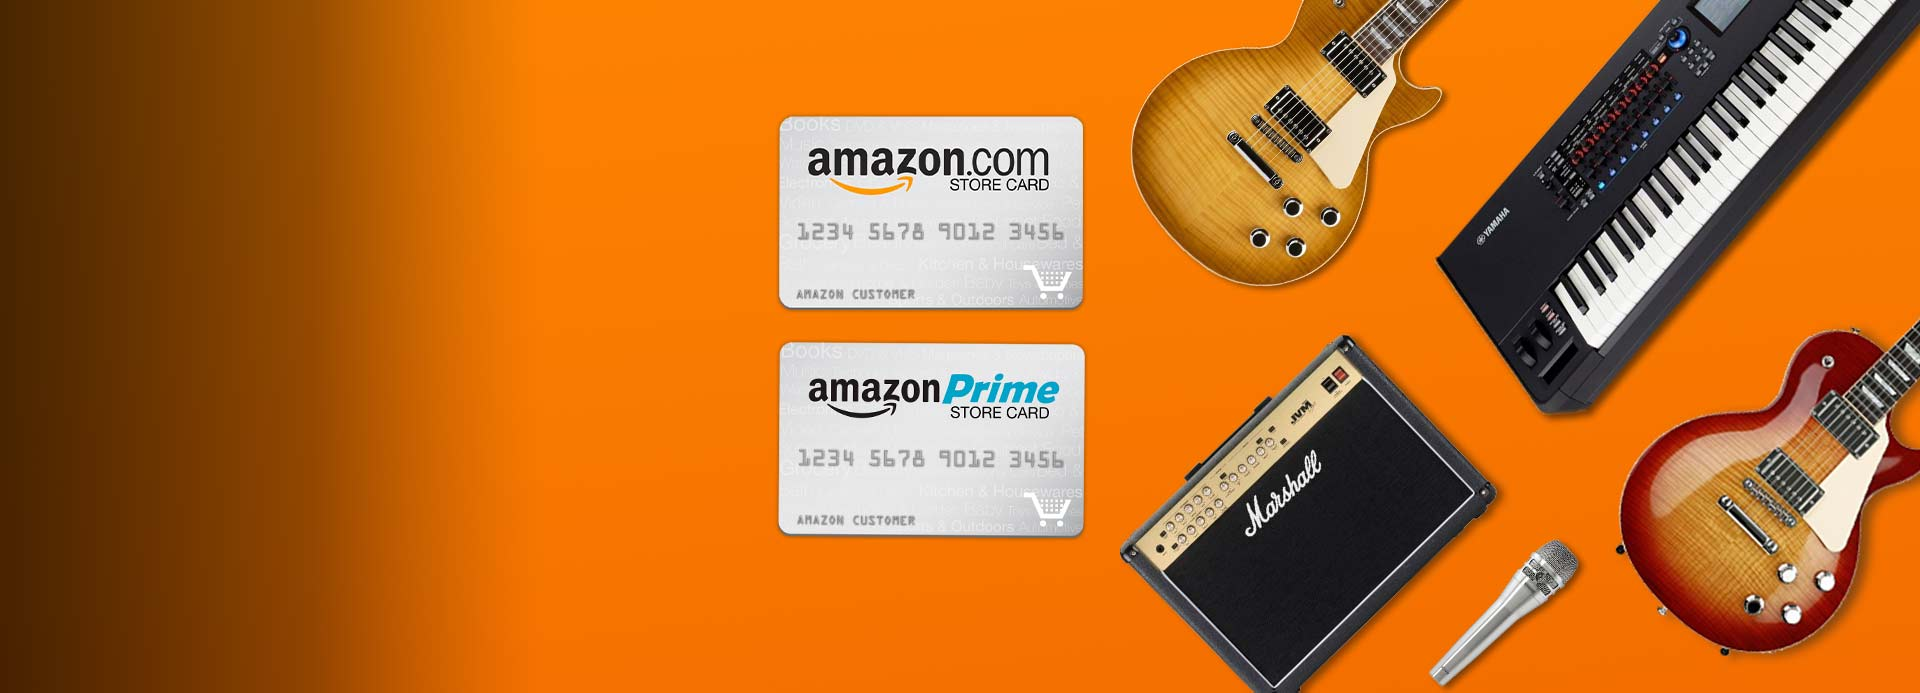 Buy now, pay later with the Amazon.com Store Card